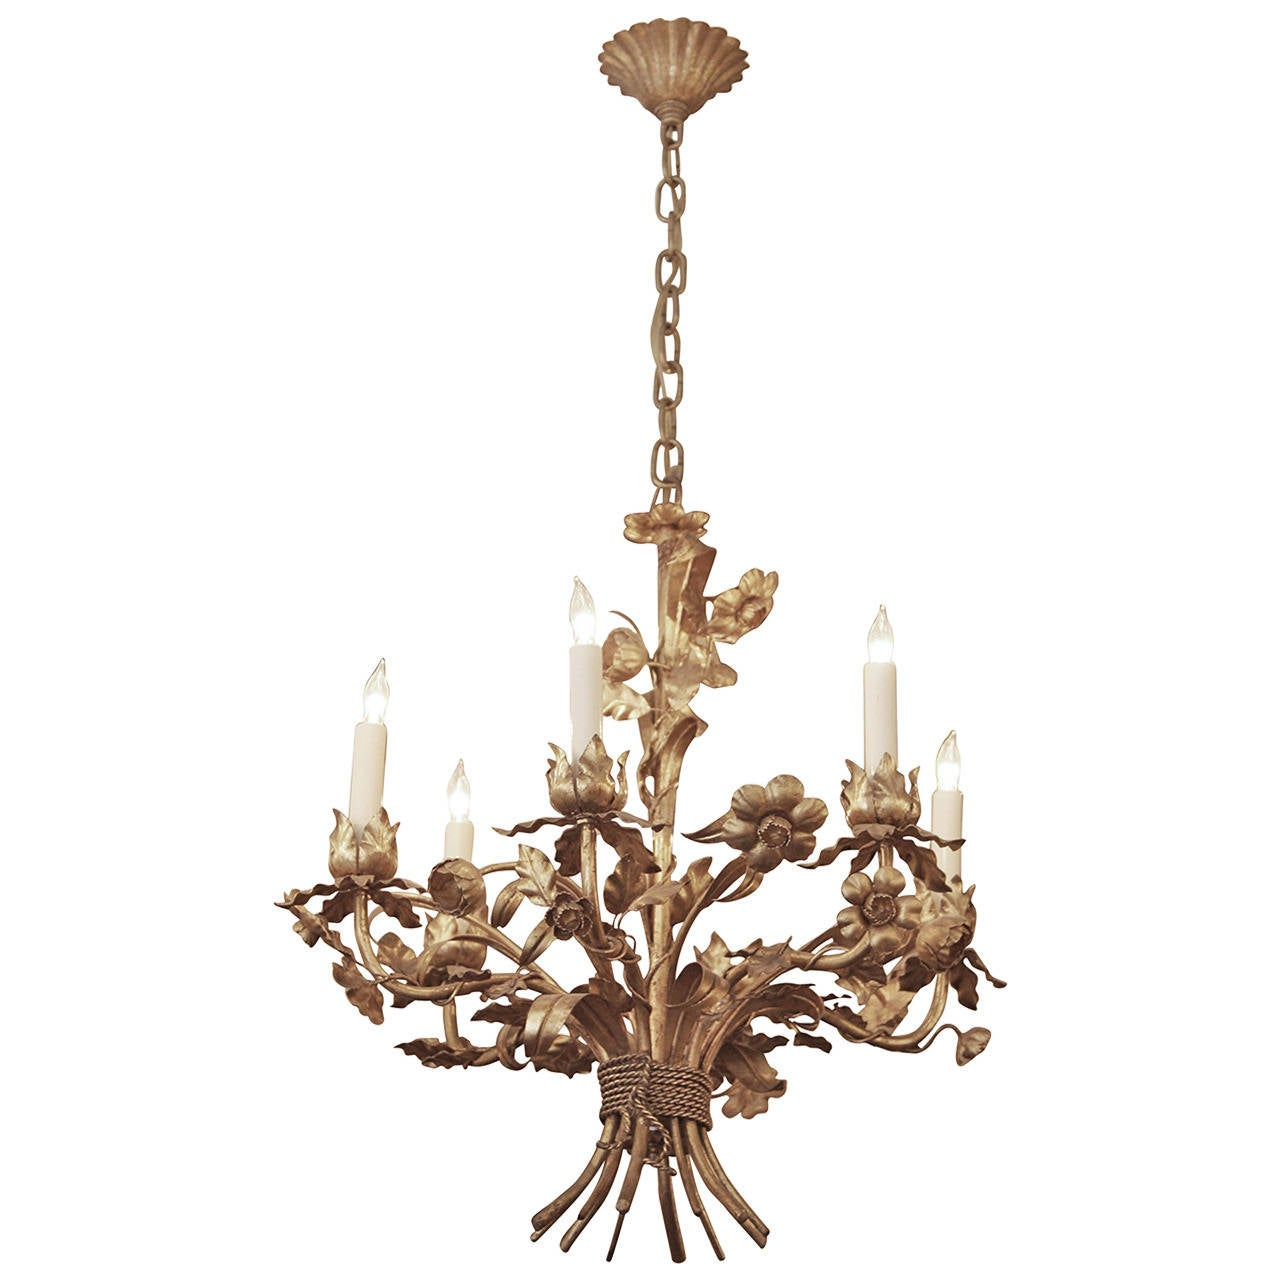 1950s Italian Gilt Metal Floral Six-Light Chandelier with Wheat and Ropes